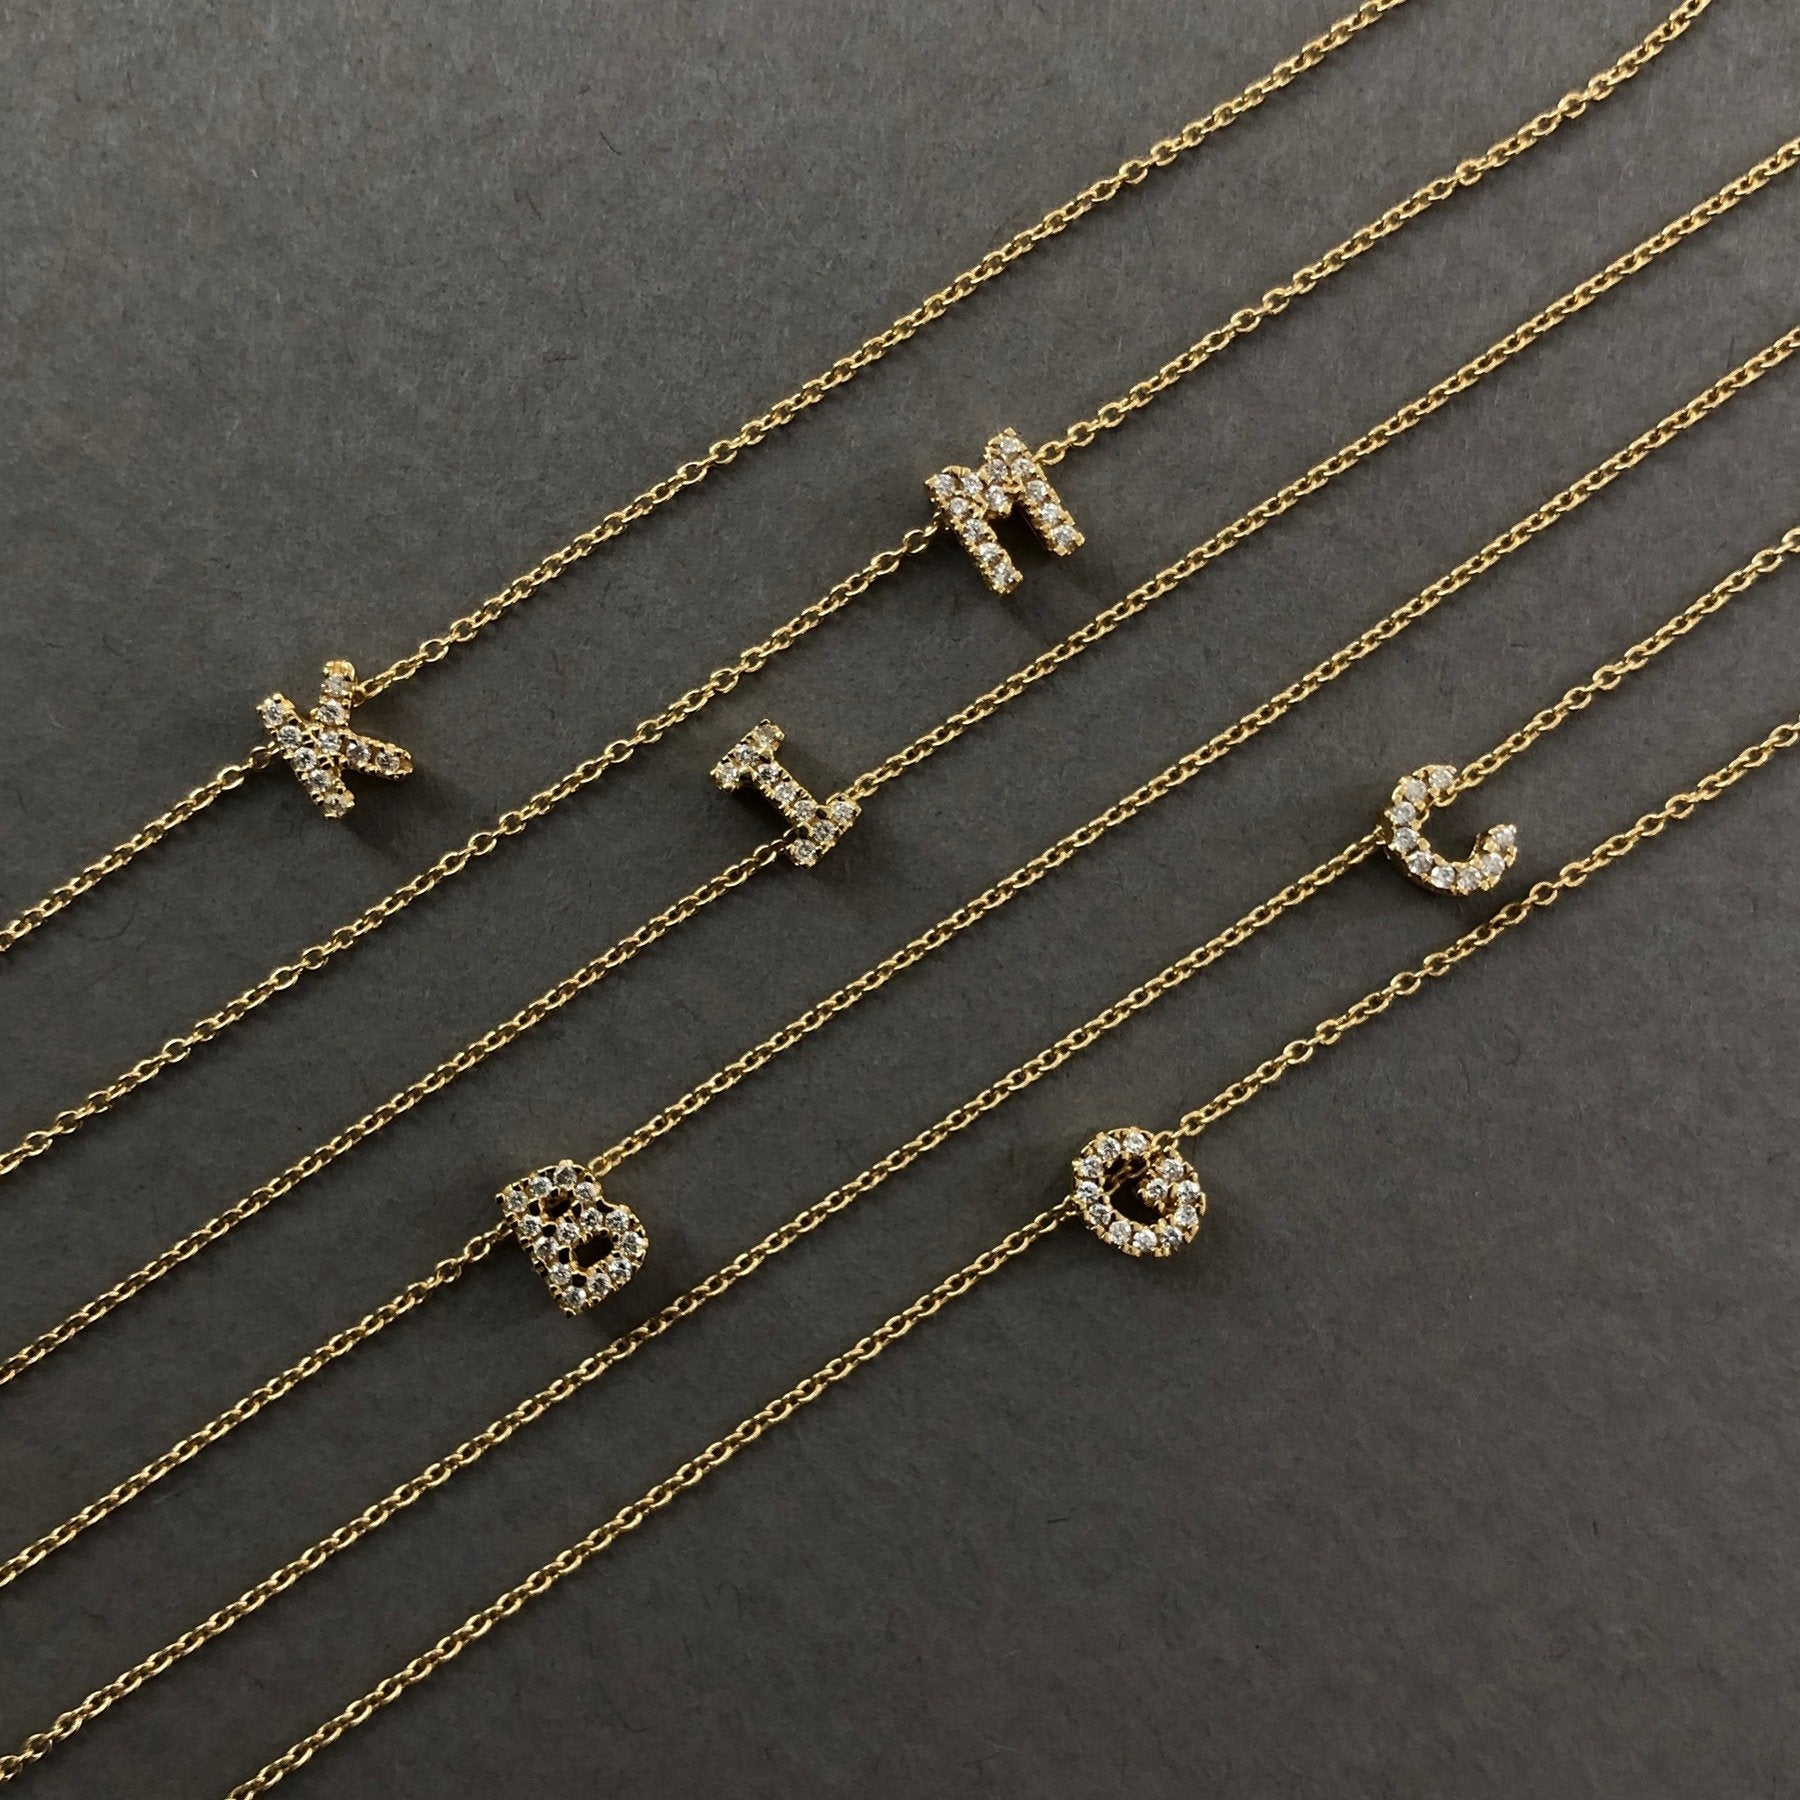 Shine, 18-karat Yellow Gold Necklace with Diamond Pendant - W